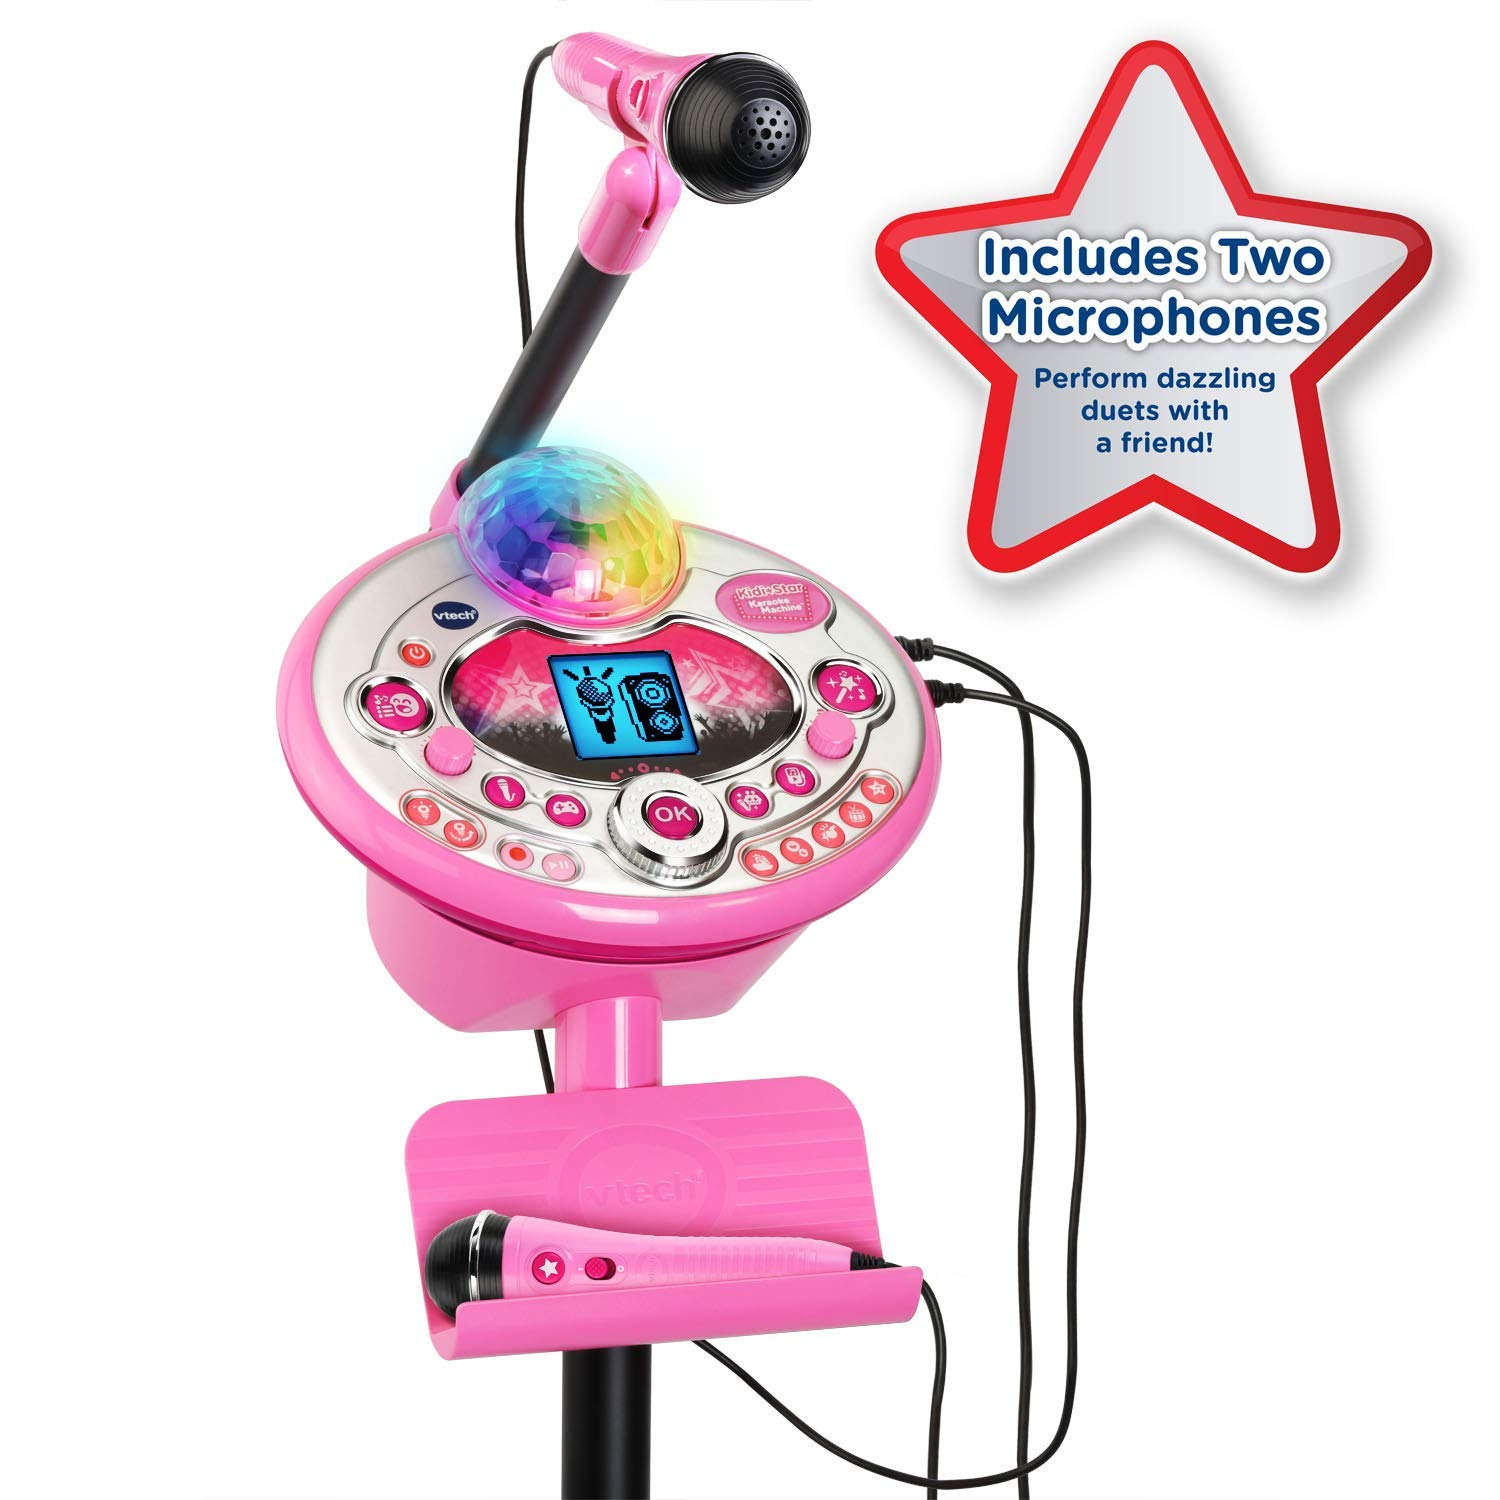 VTech Kidi Star Karaoke System 2 Mics with Mic Stand & AC Adapter, Pink (Renewed) by VTech (Image #1)